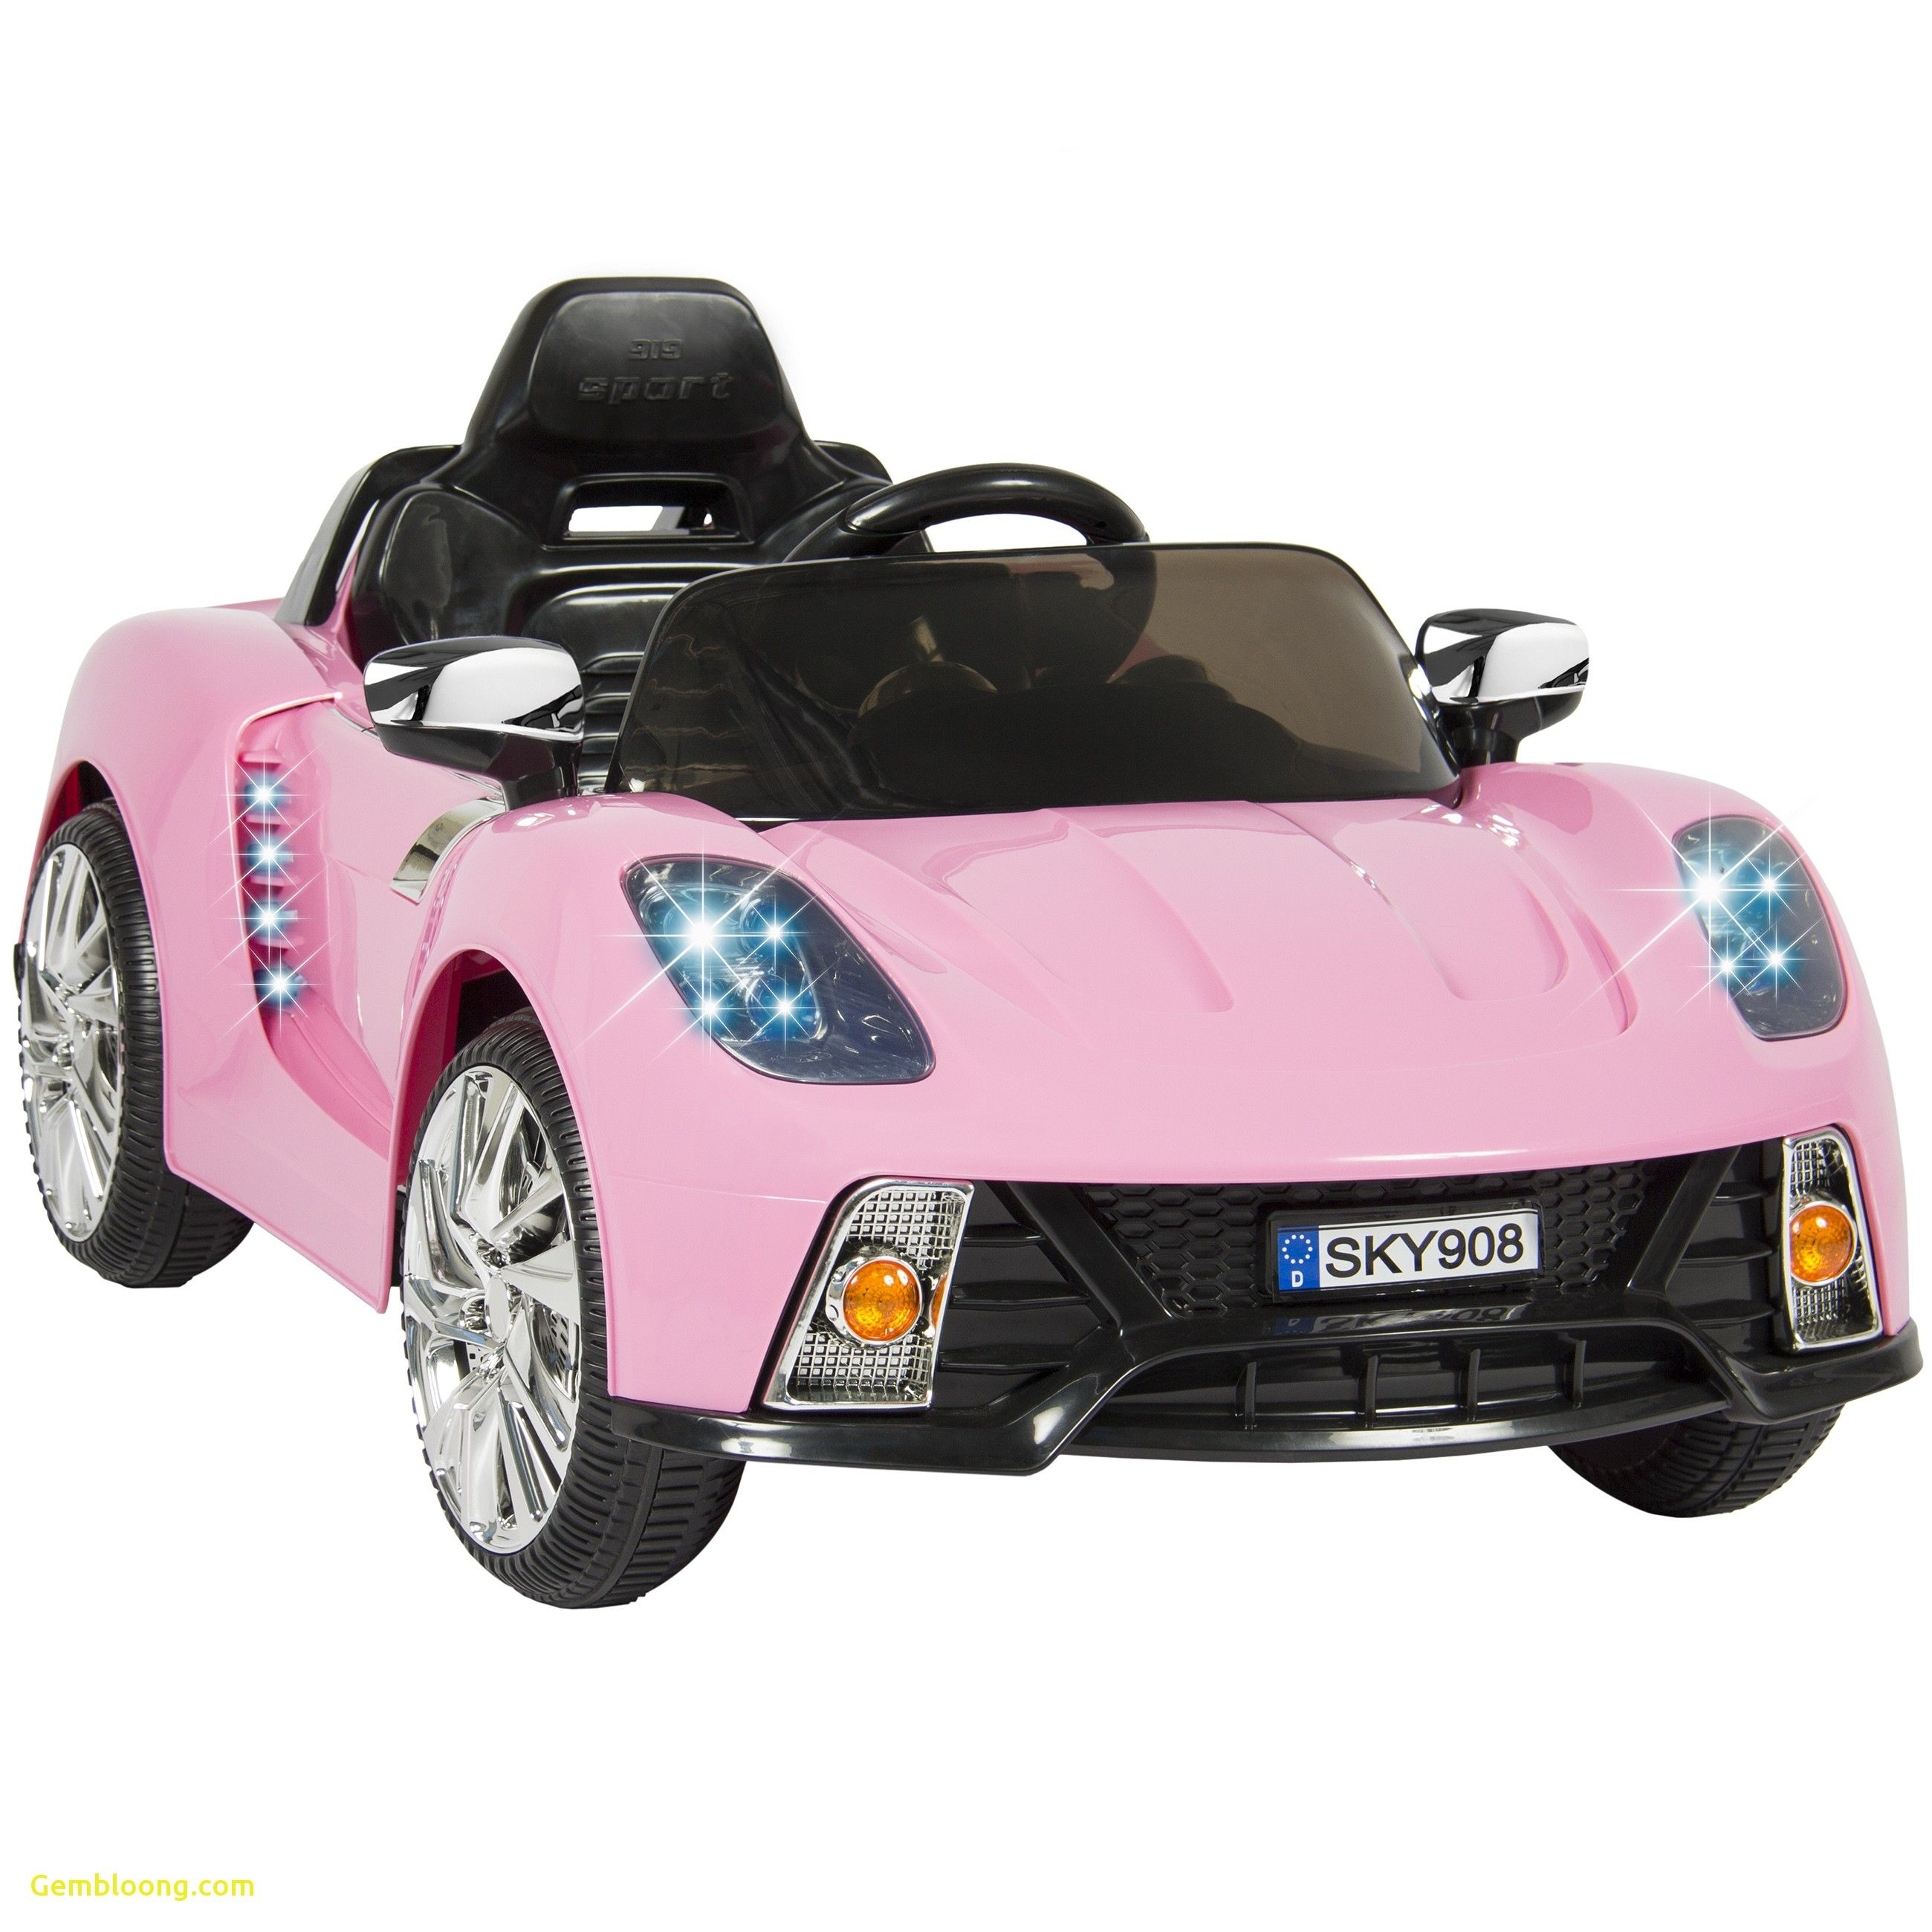 luxury motorized vehicles for kids encouraged to my personal website on this occasion i